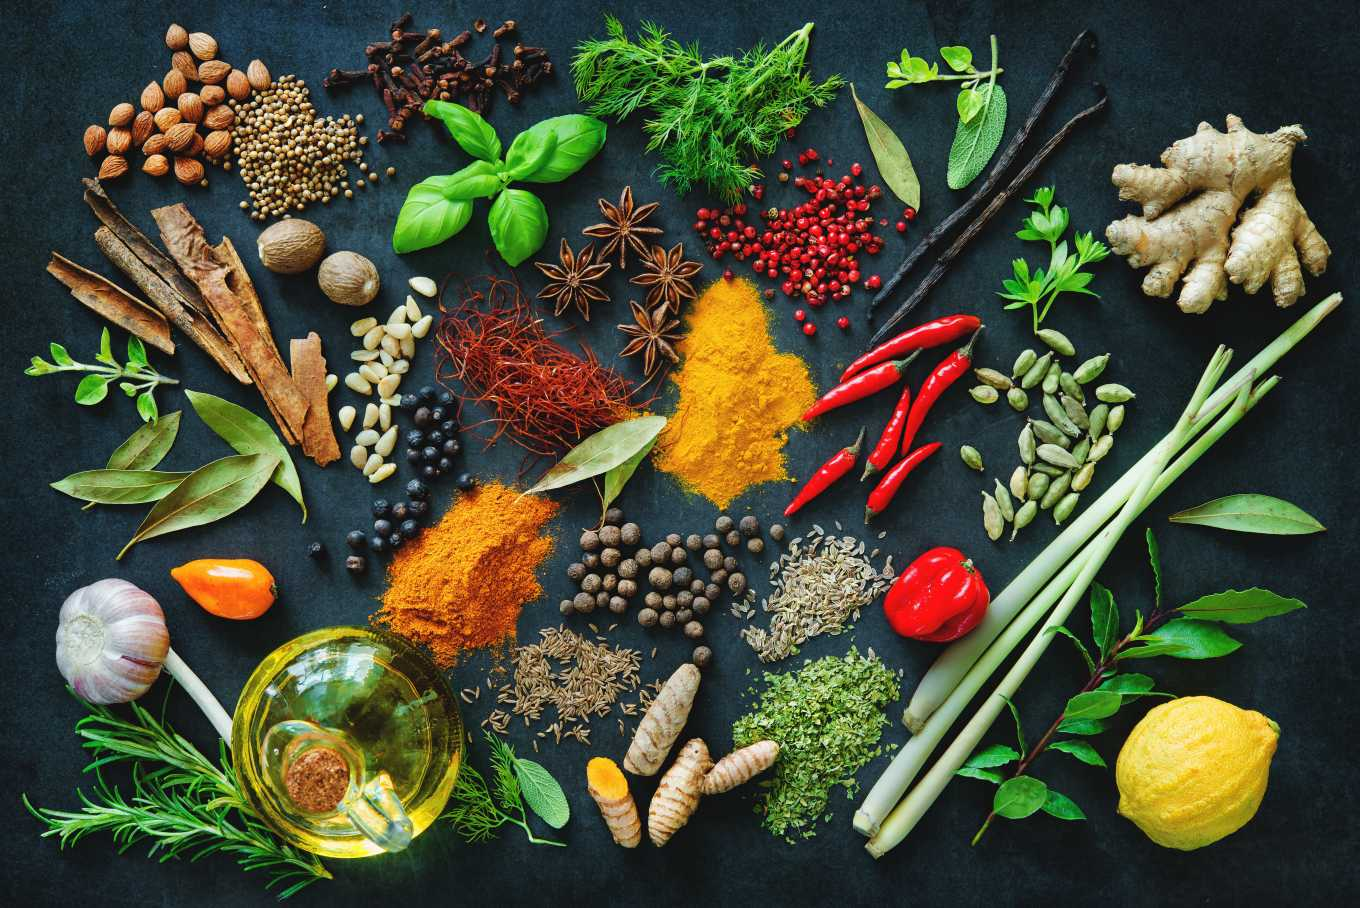 Is your food always bland? You may be missing the trick with these spices and herbs!